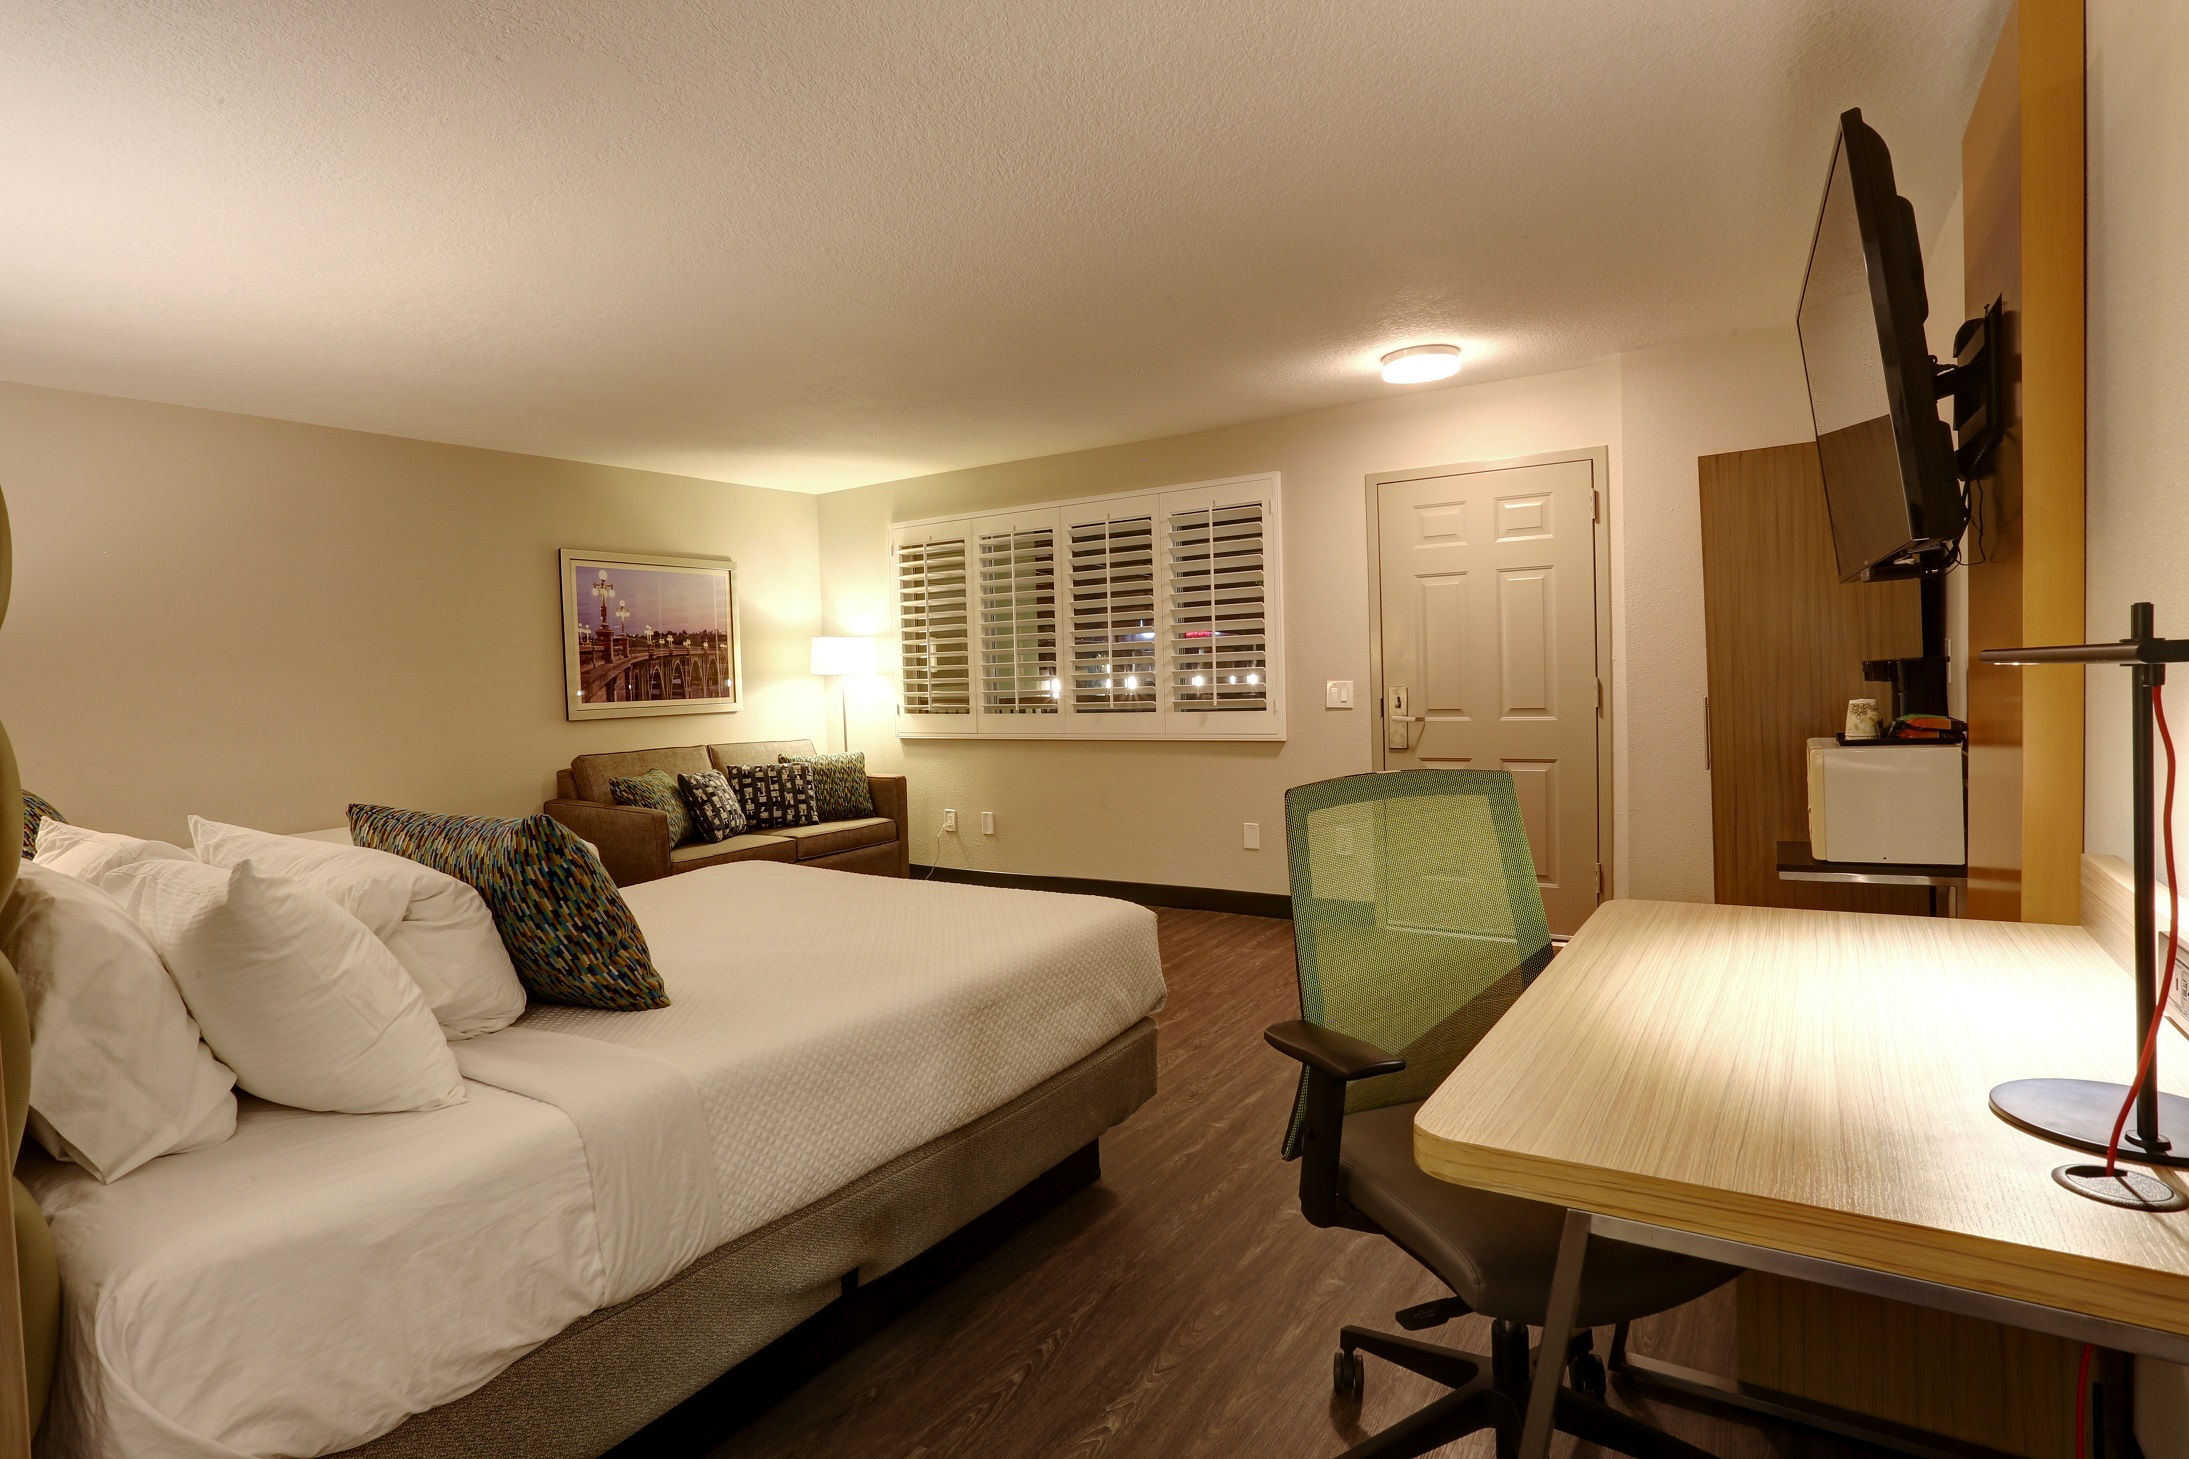 GreenTree Inn | Find the best stress free downtown Pasadena hotels in California